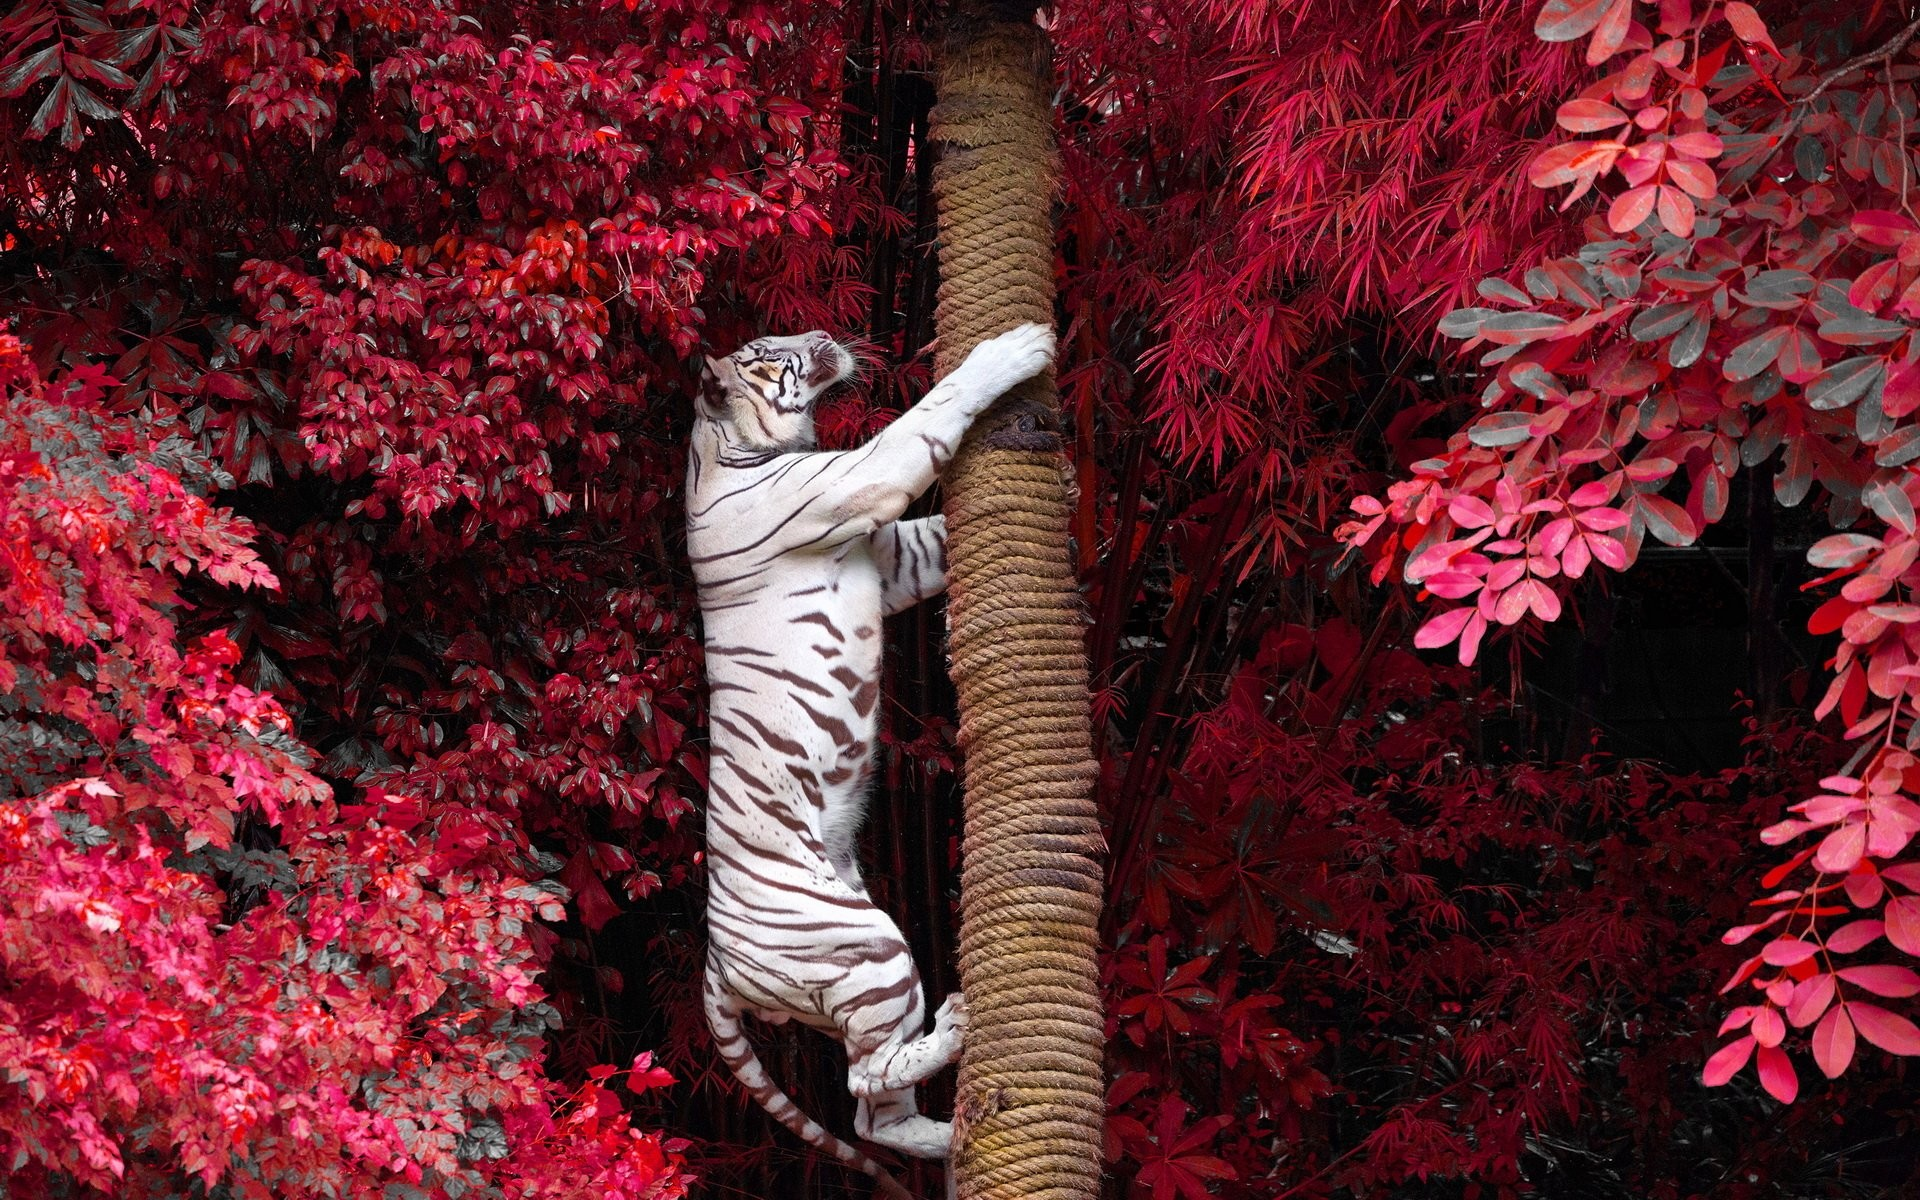 White Tiger wallpaper ·① Download free cool High Resolution backgrounds for desktop computers ...